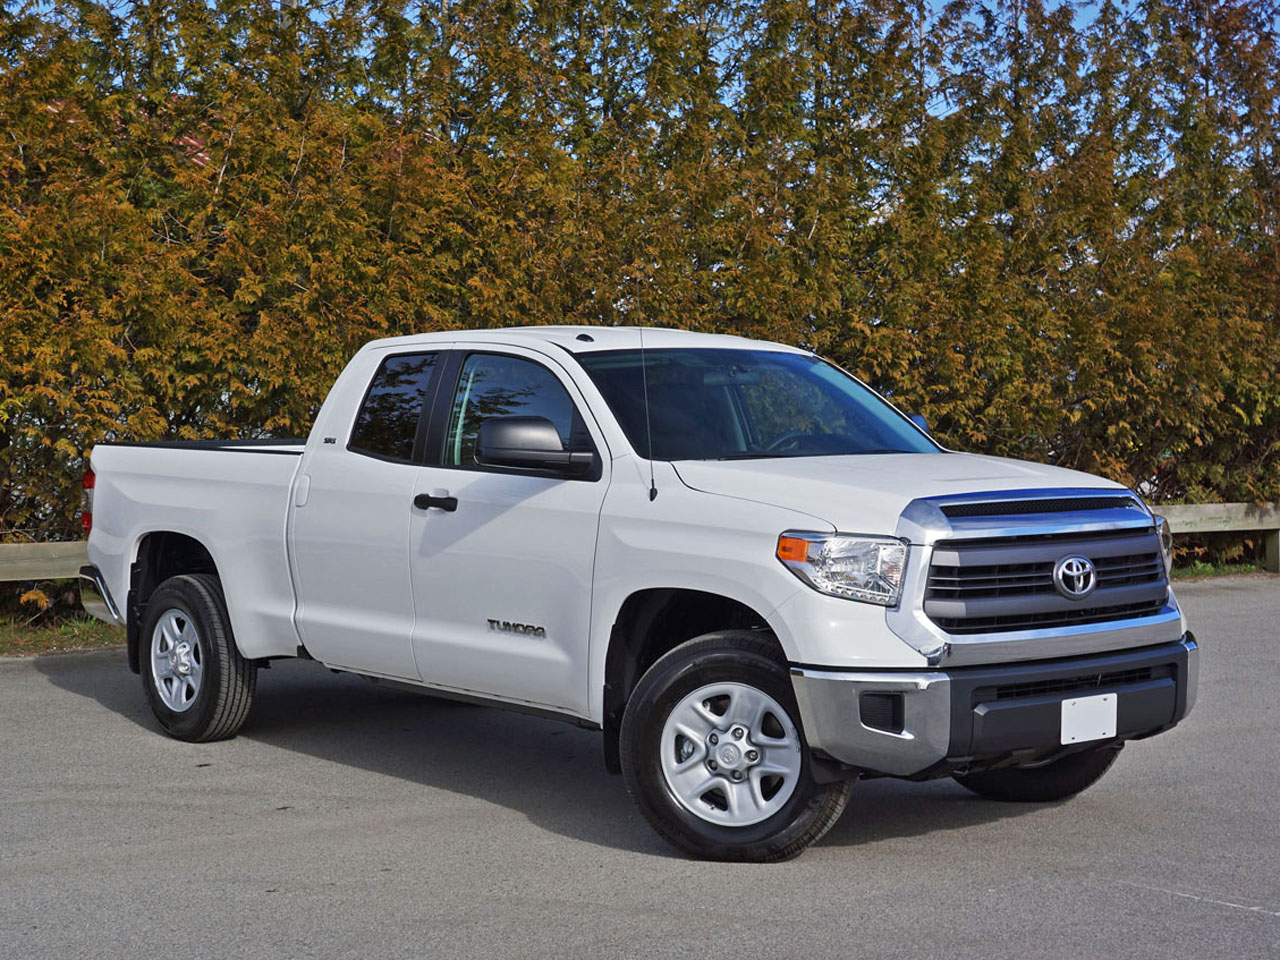 2015 Toyota Tundra Double Cab 4.6 SR5 4x4 Road Test Review | CarCostCanada